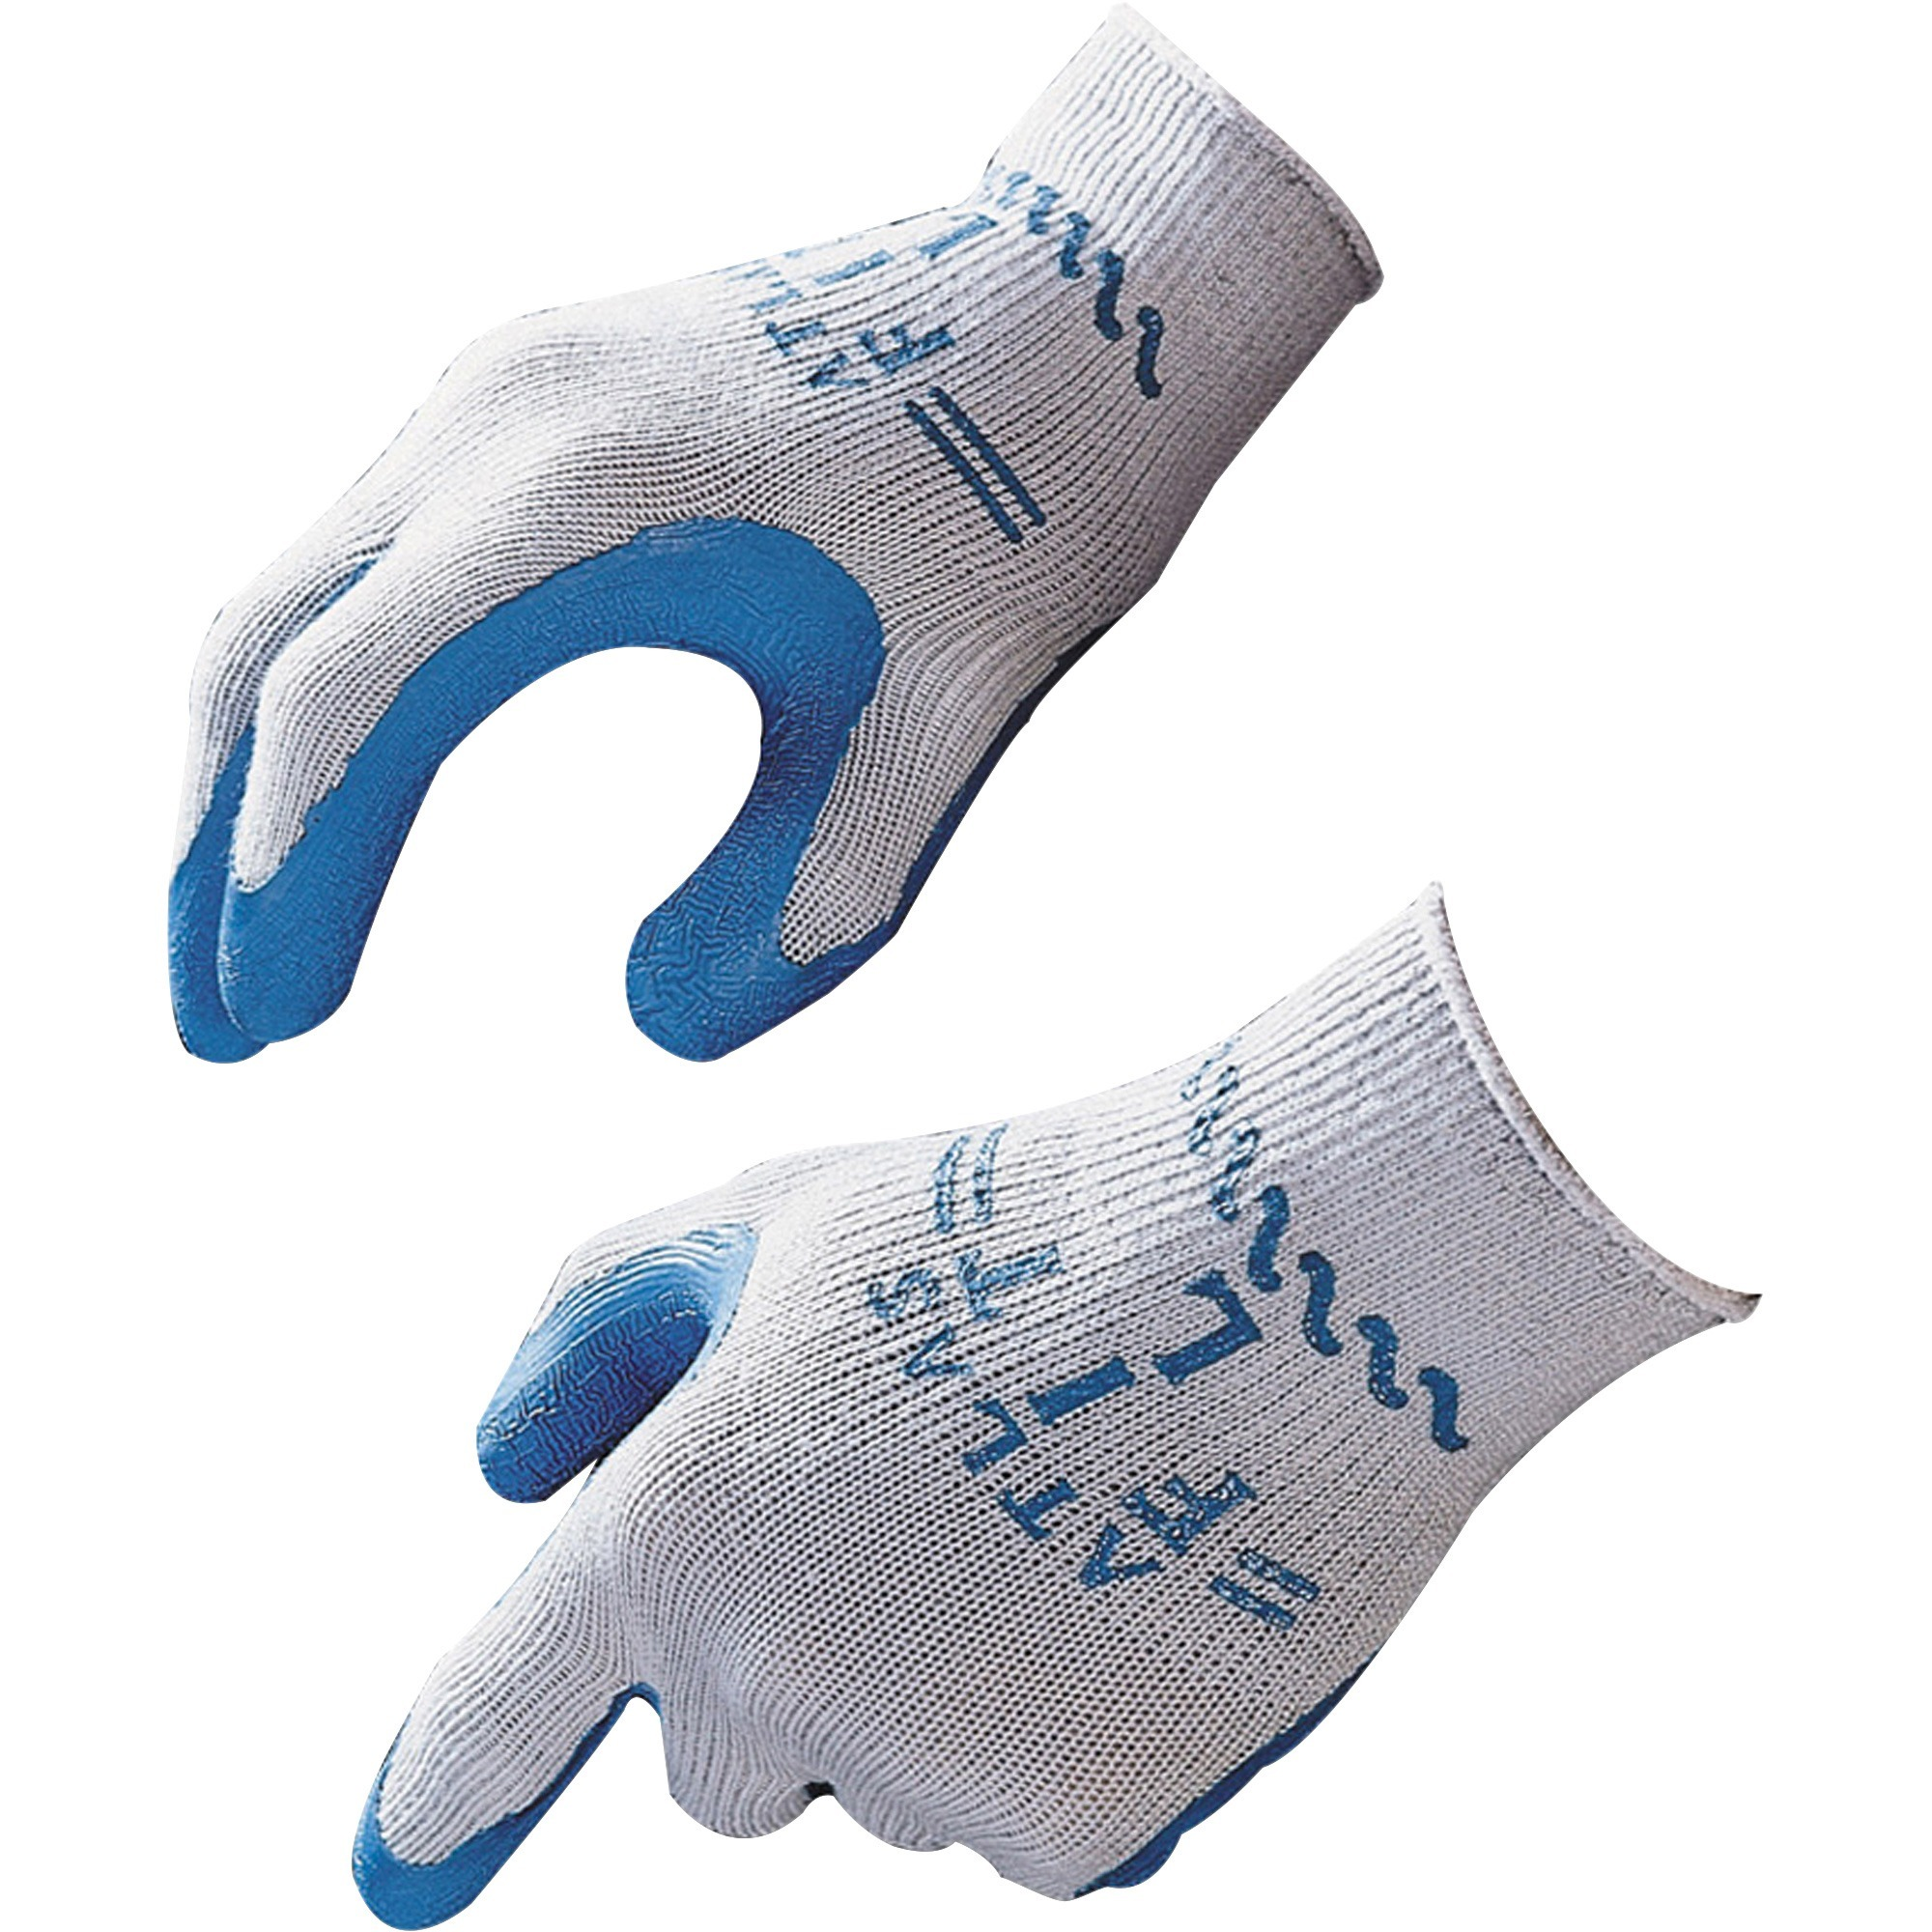 Showa Atlas Fit General Purpose Gloves - Medium Size - Natural Rubber - Blue, Gray - Comfortable, Lightweight, Knit Wrist, Durable, Debris Resistant - 24 / Box